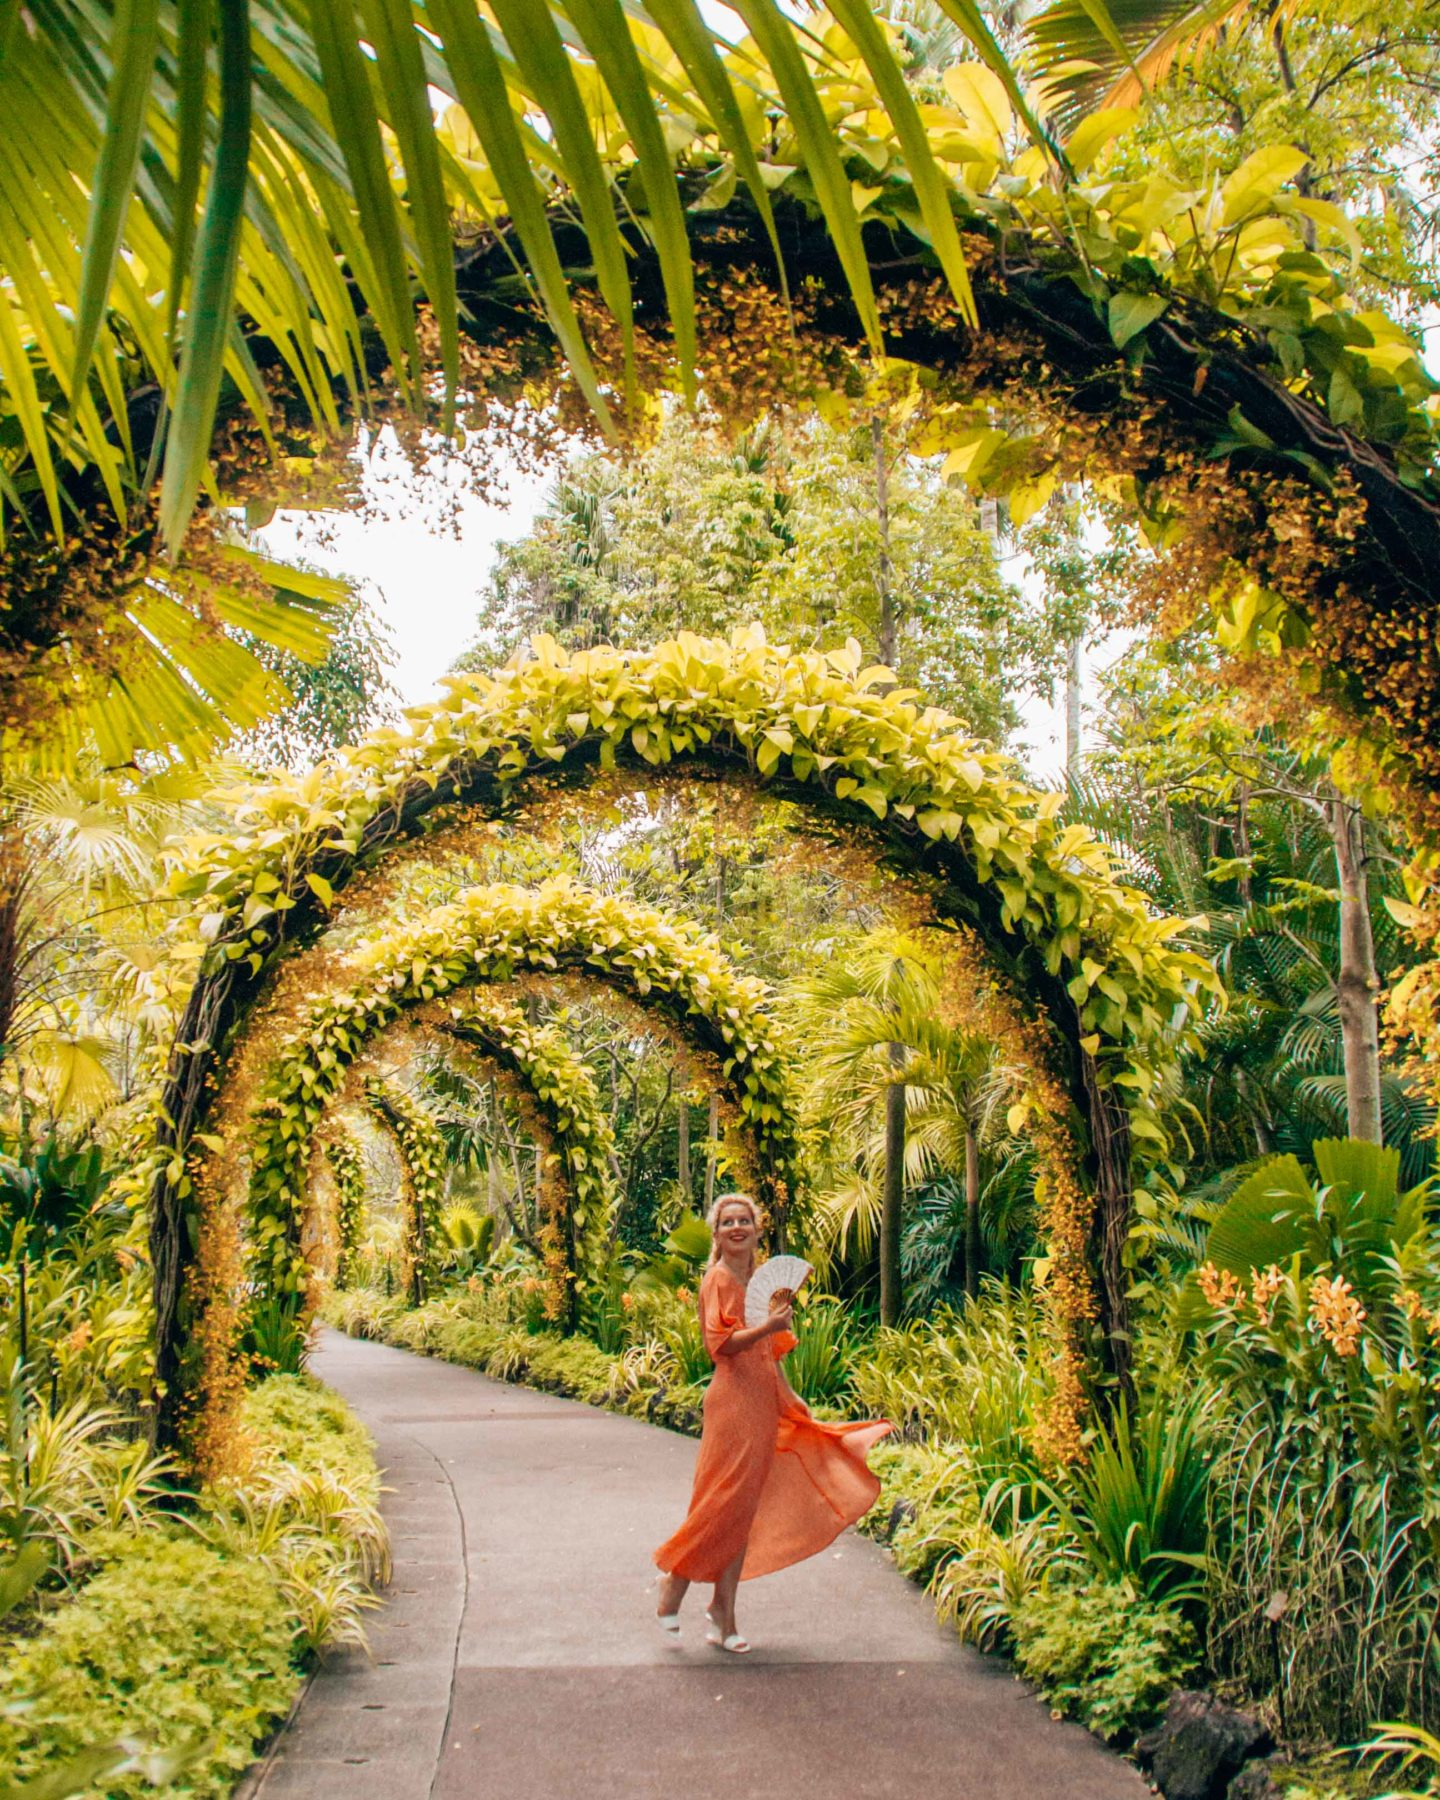 National Orchid Gardens archway, instagrammable spot in the Botanic Gardens, Singapore